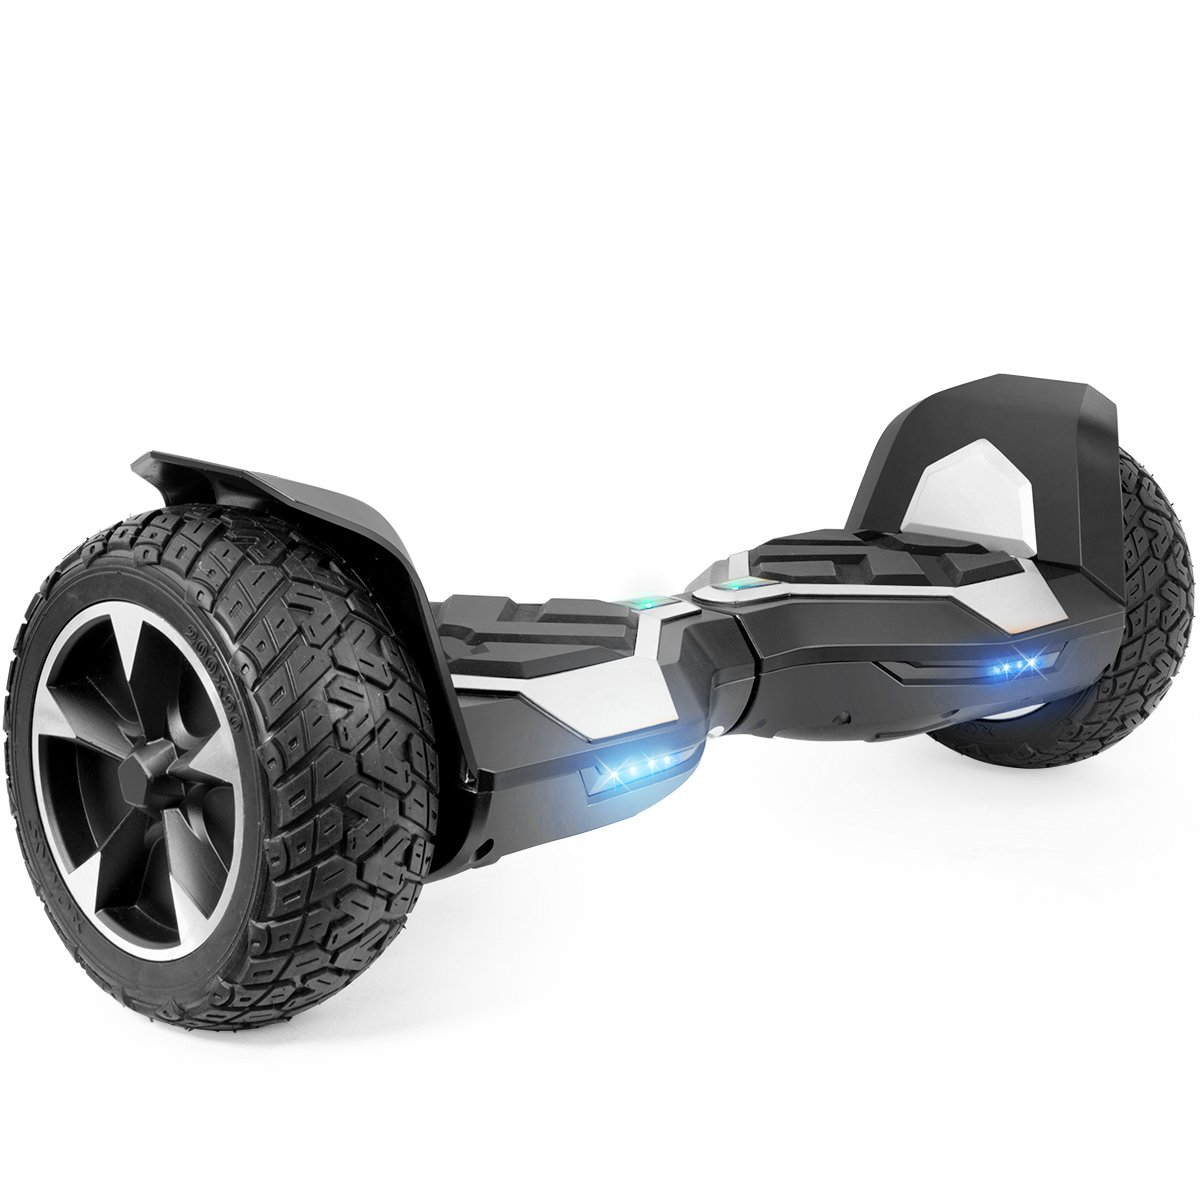 XtremepowerUS 8.5 Inch Off-road All Terrain Self-balancing Hoverboard, w/ Bluetooth Speaker (SILVER)